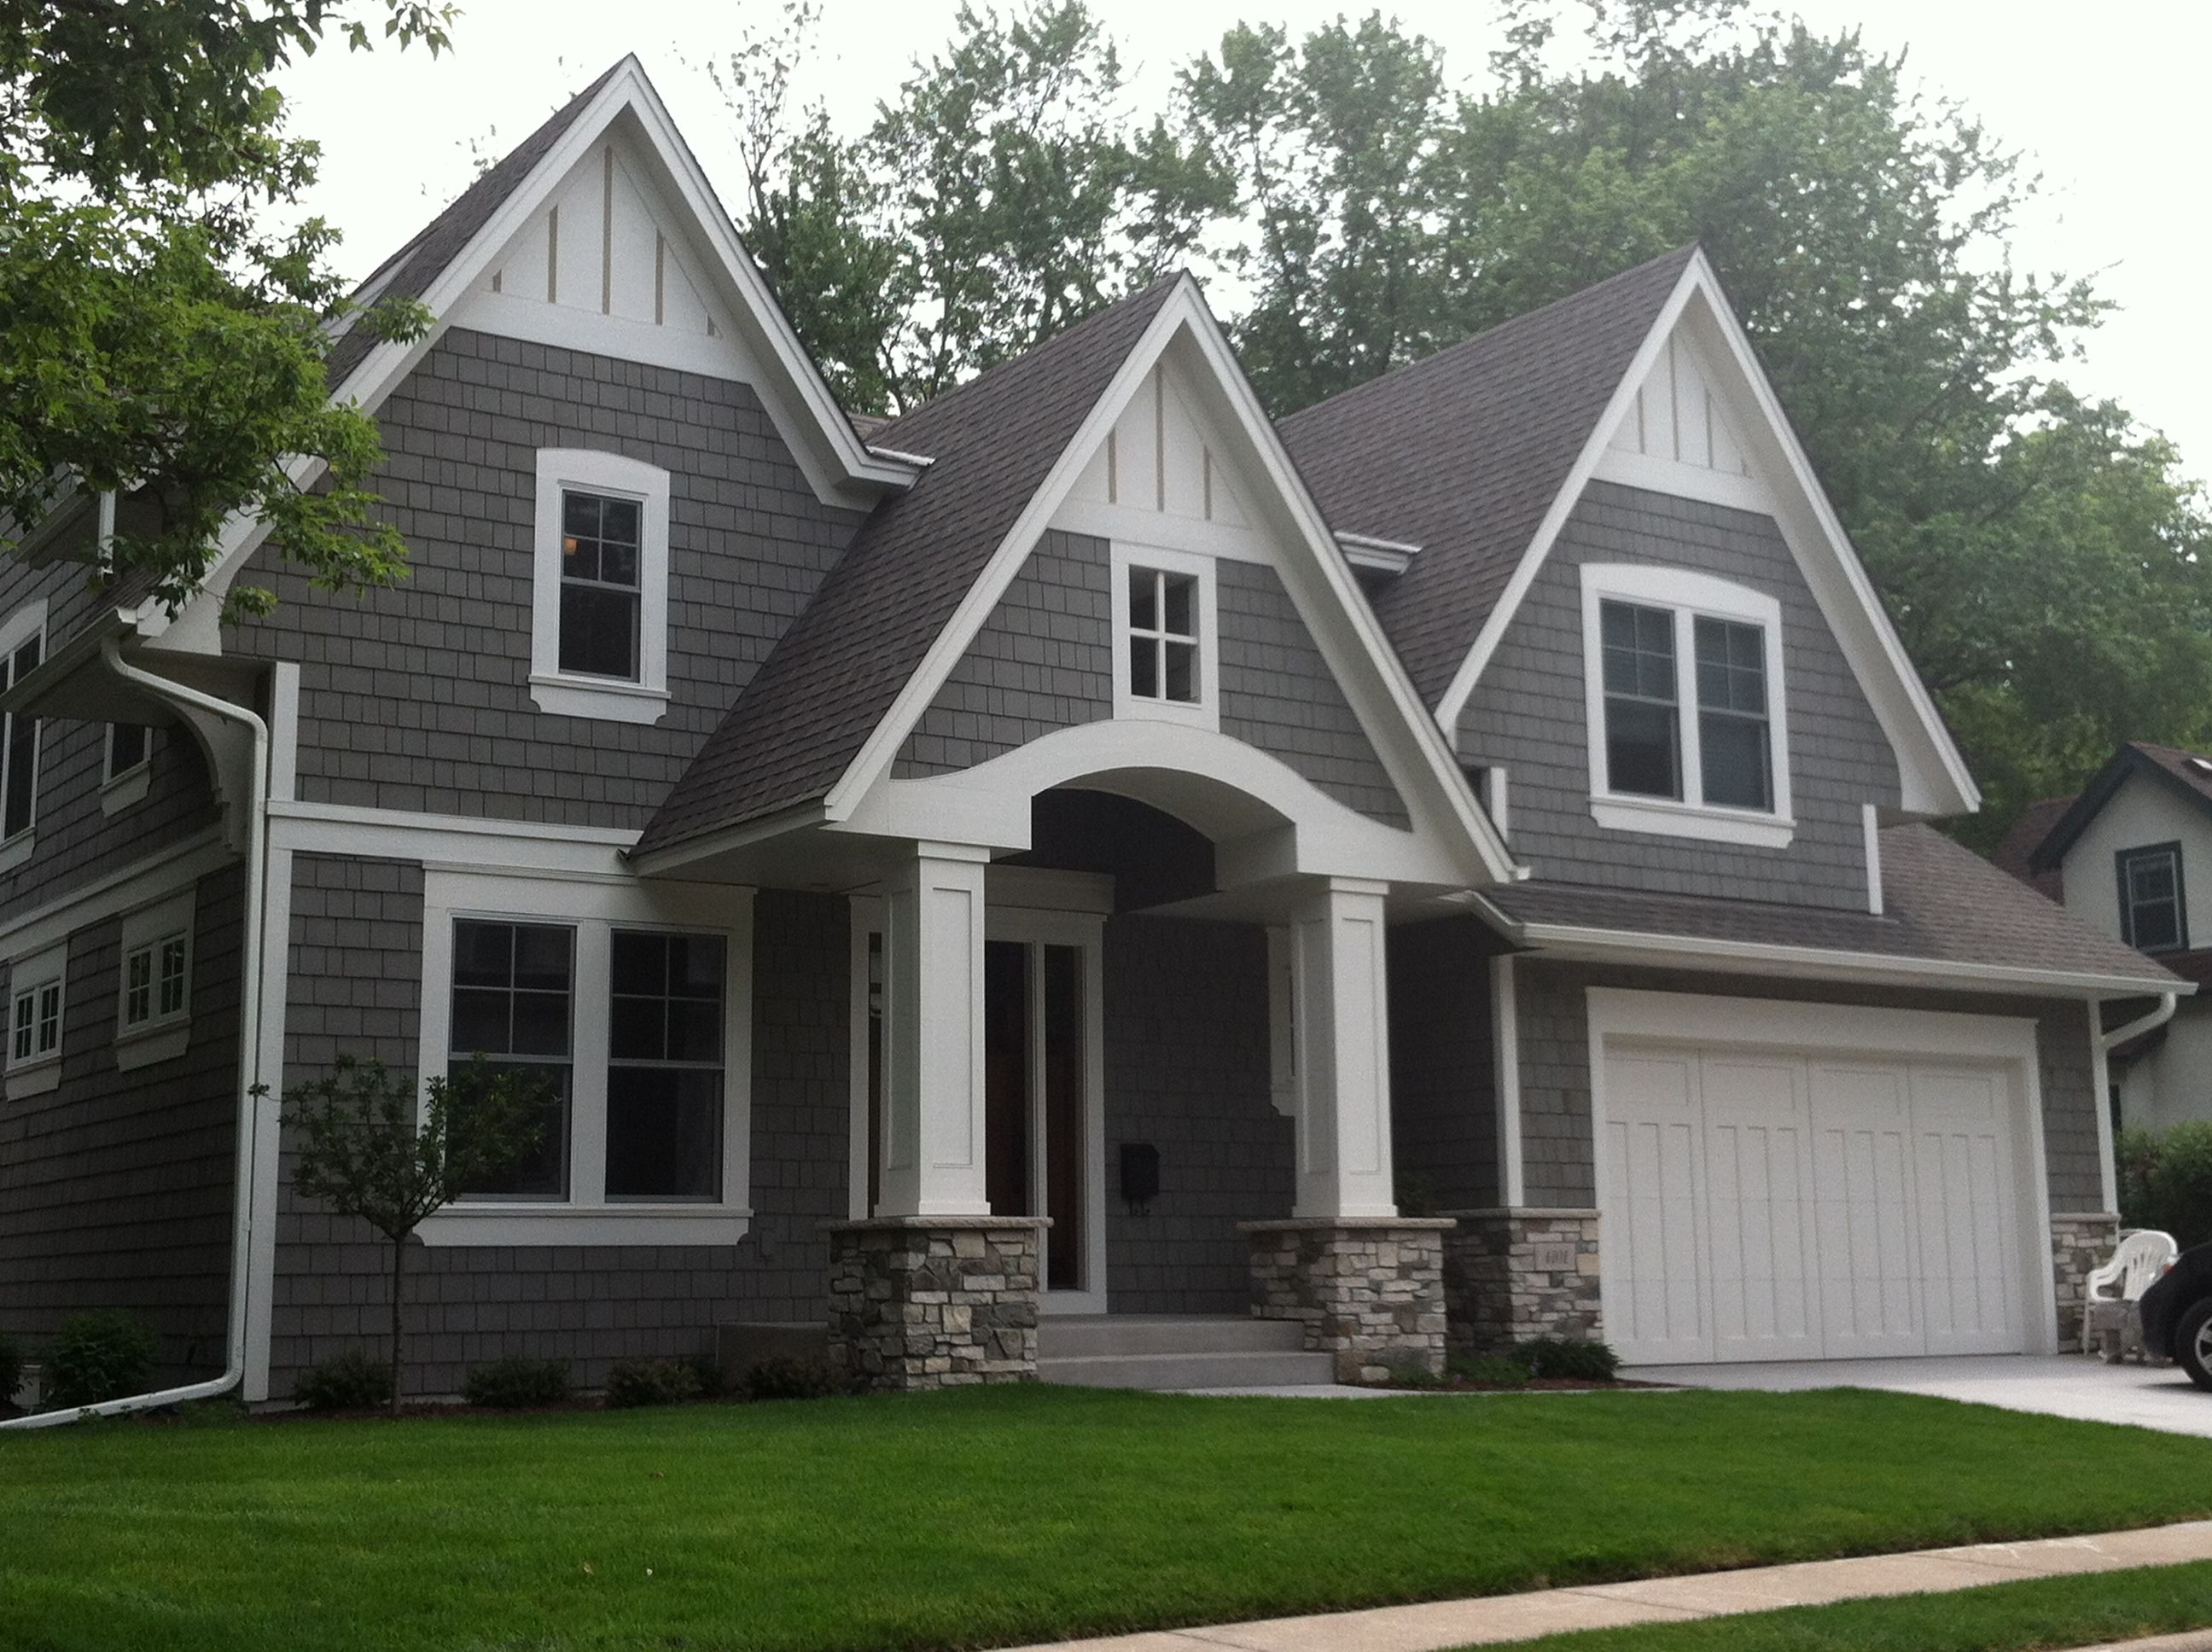 Exterior house color schemes barrier exteriors minnesota for Outdoor home color ideas